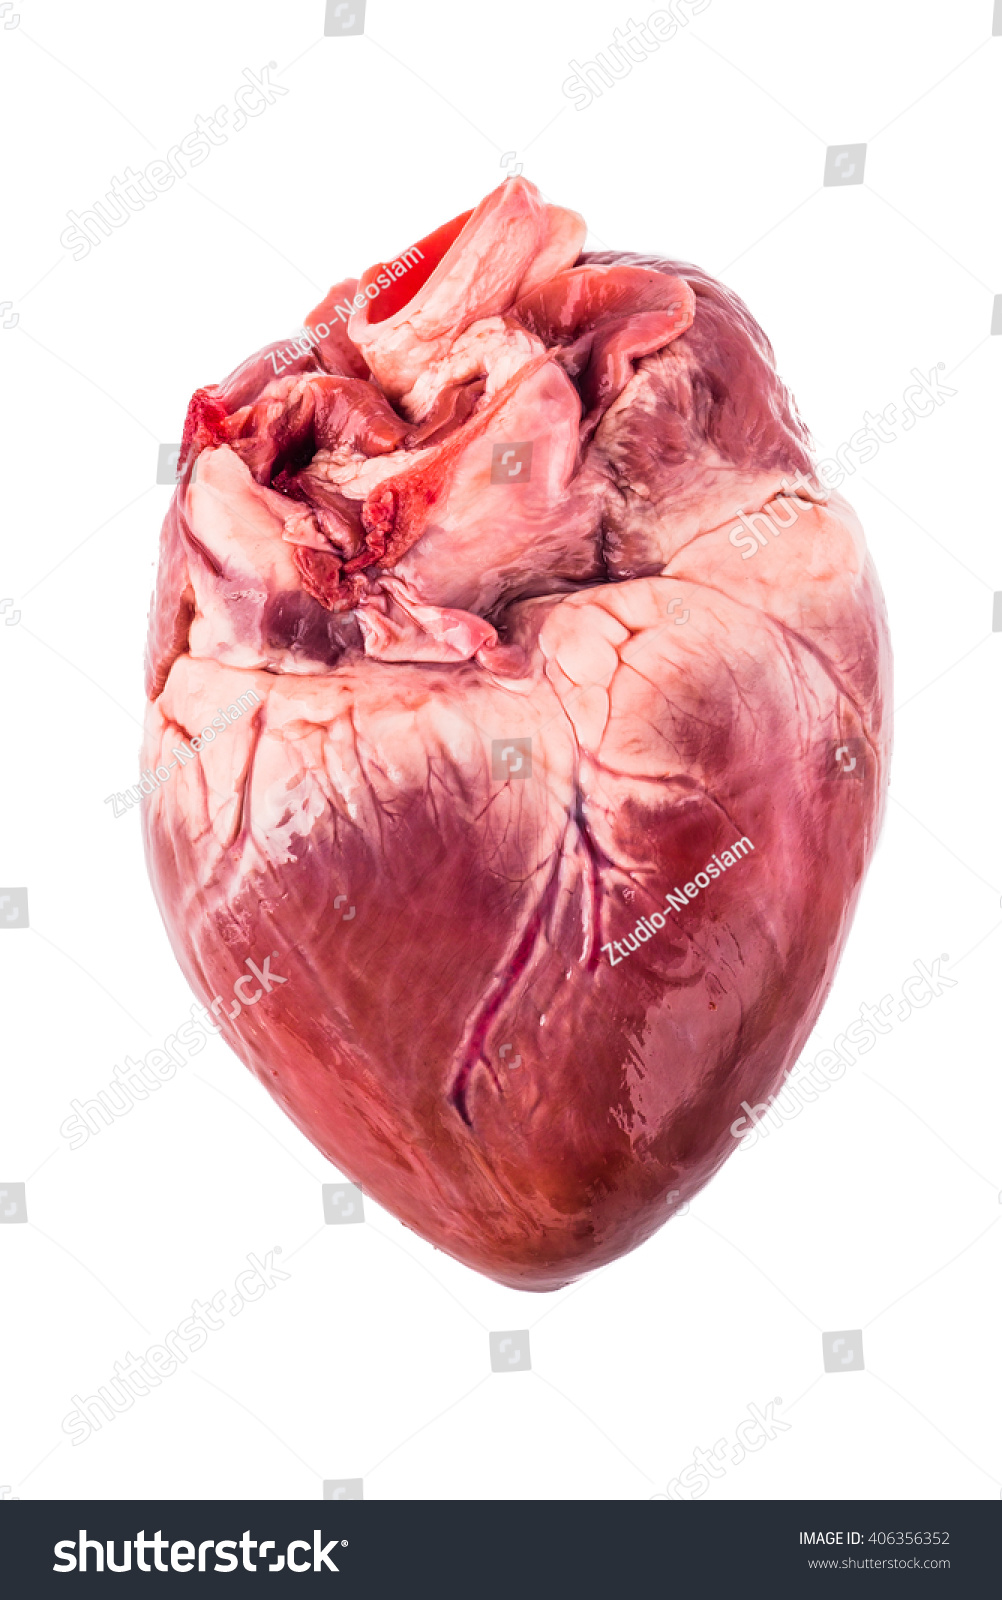 Pig Heart On White Background Stock Photo Royalty Free 406356352